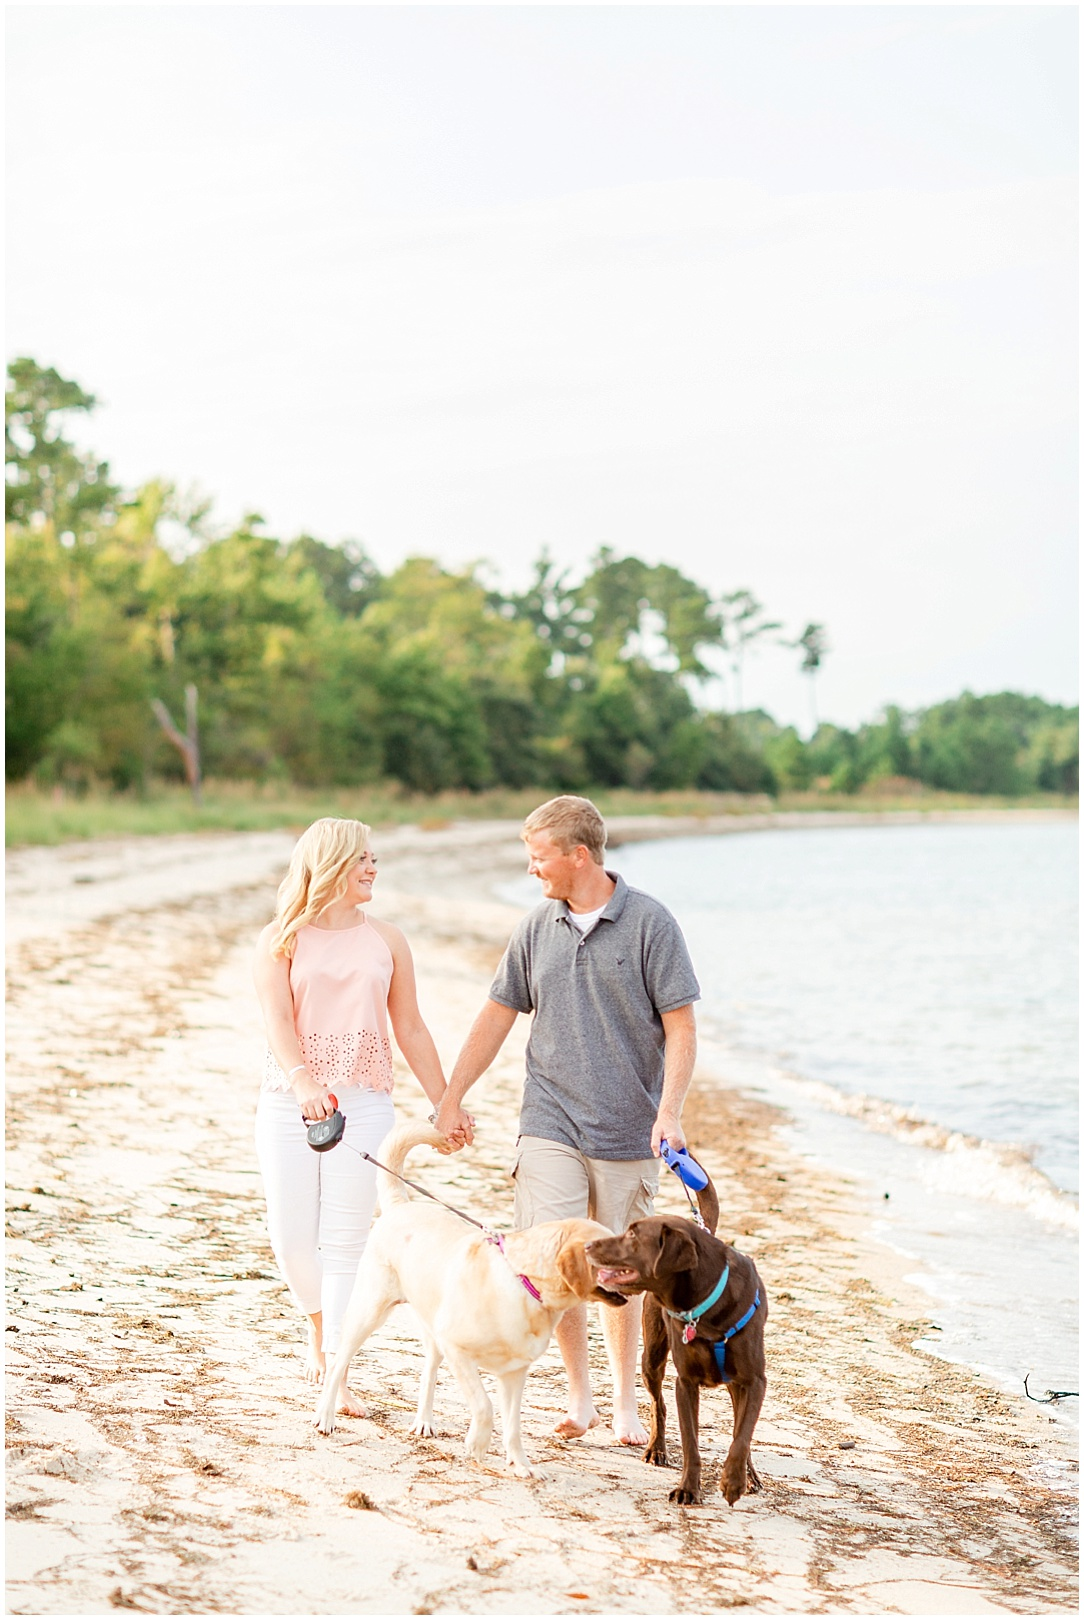 Hughlett Point Engagement Session - Brooke Waldroup Photography_0004.jpg